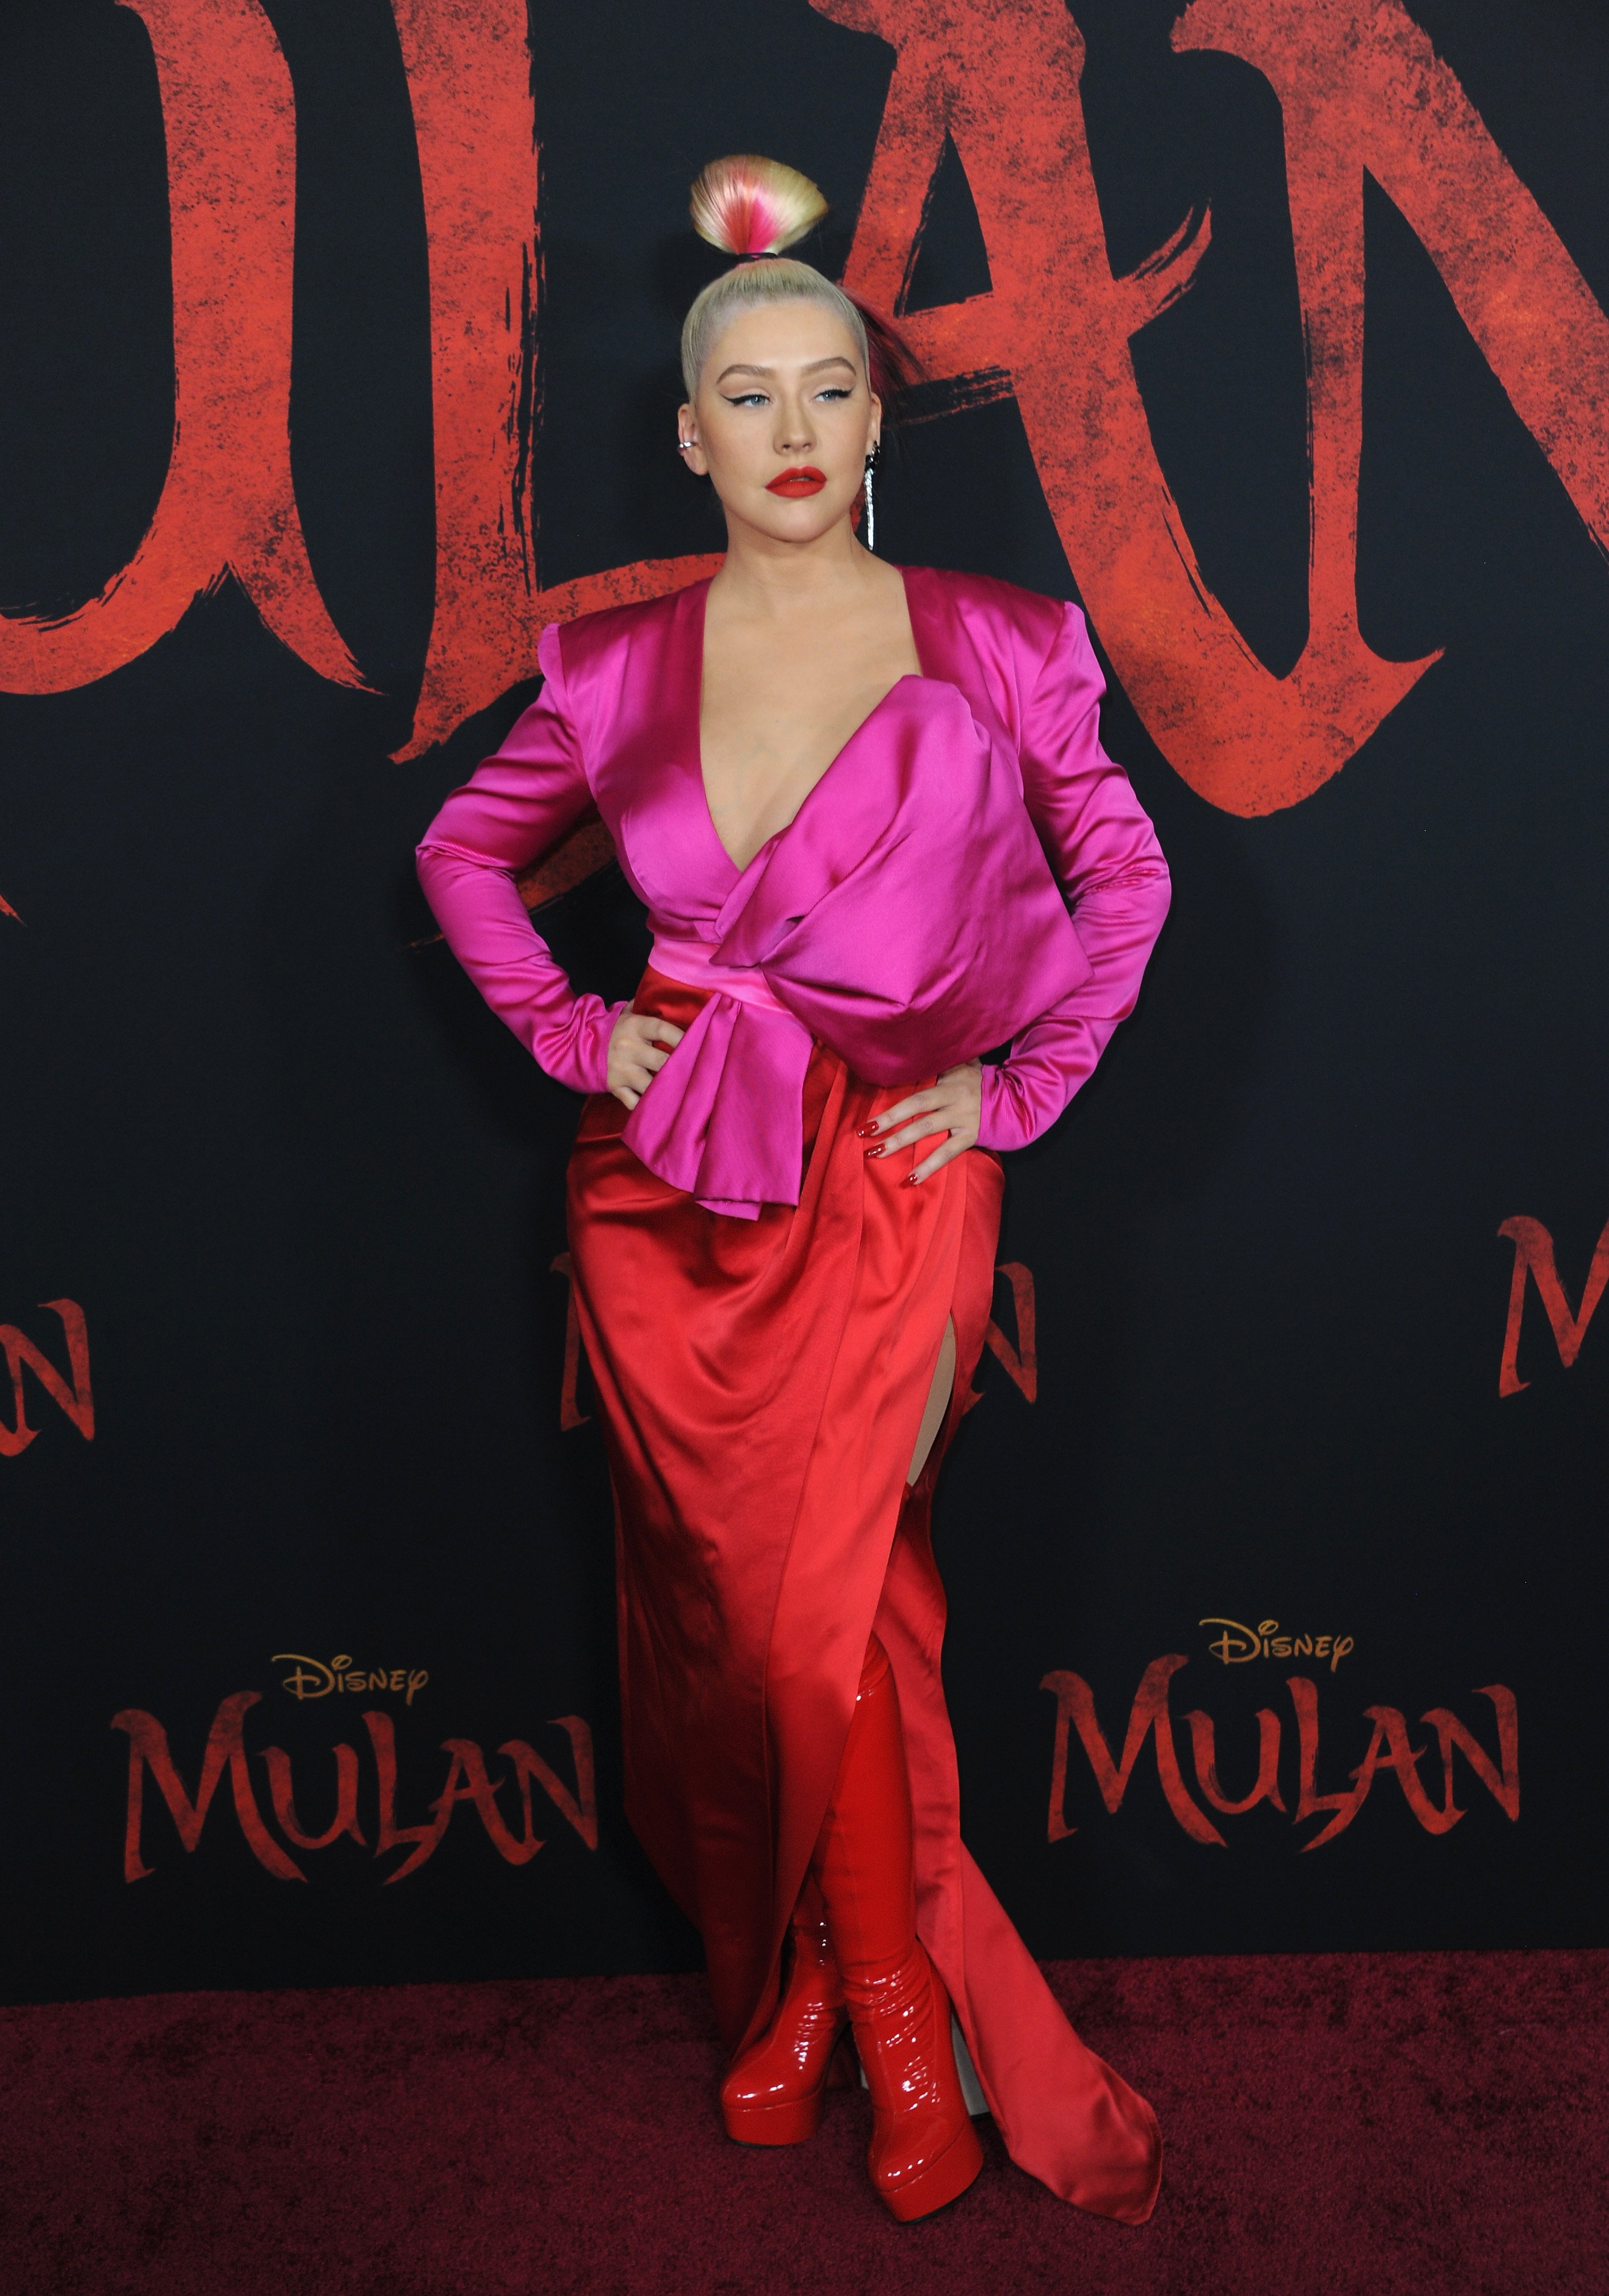 Christina Aguilera at the Premier of 'Mulan' in Hollywood, March, 2020. | Photo: Getty Images.